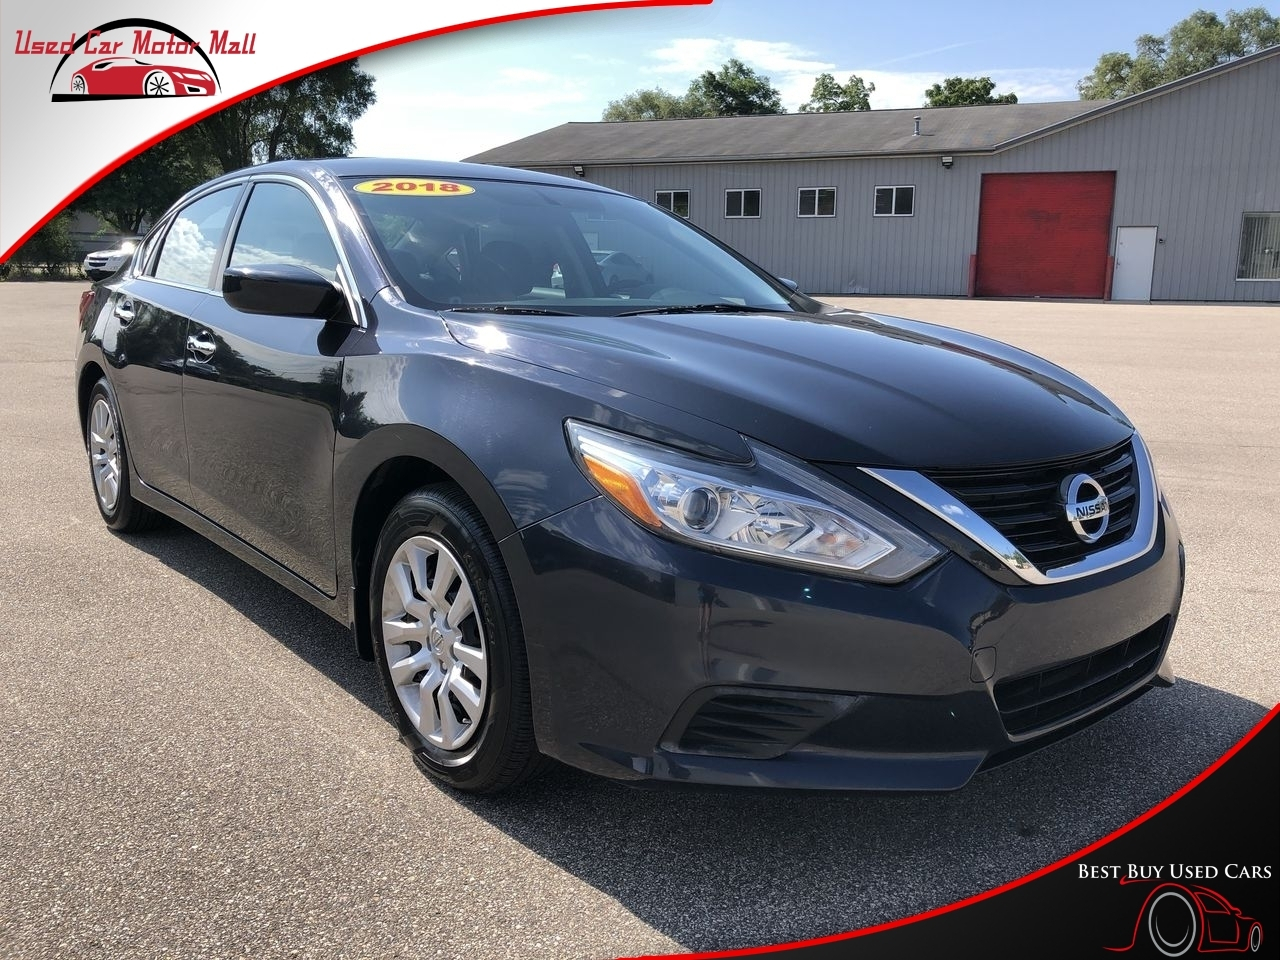 2018 Nissan Altima 2.5 S, 108221, Photo 1